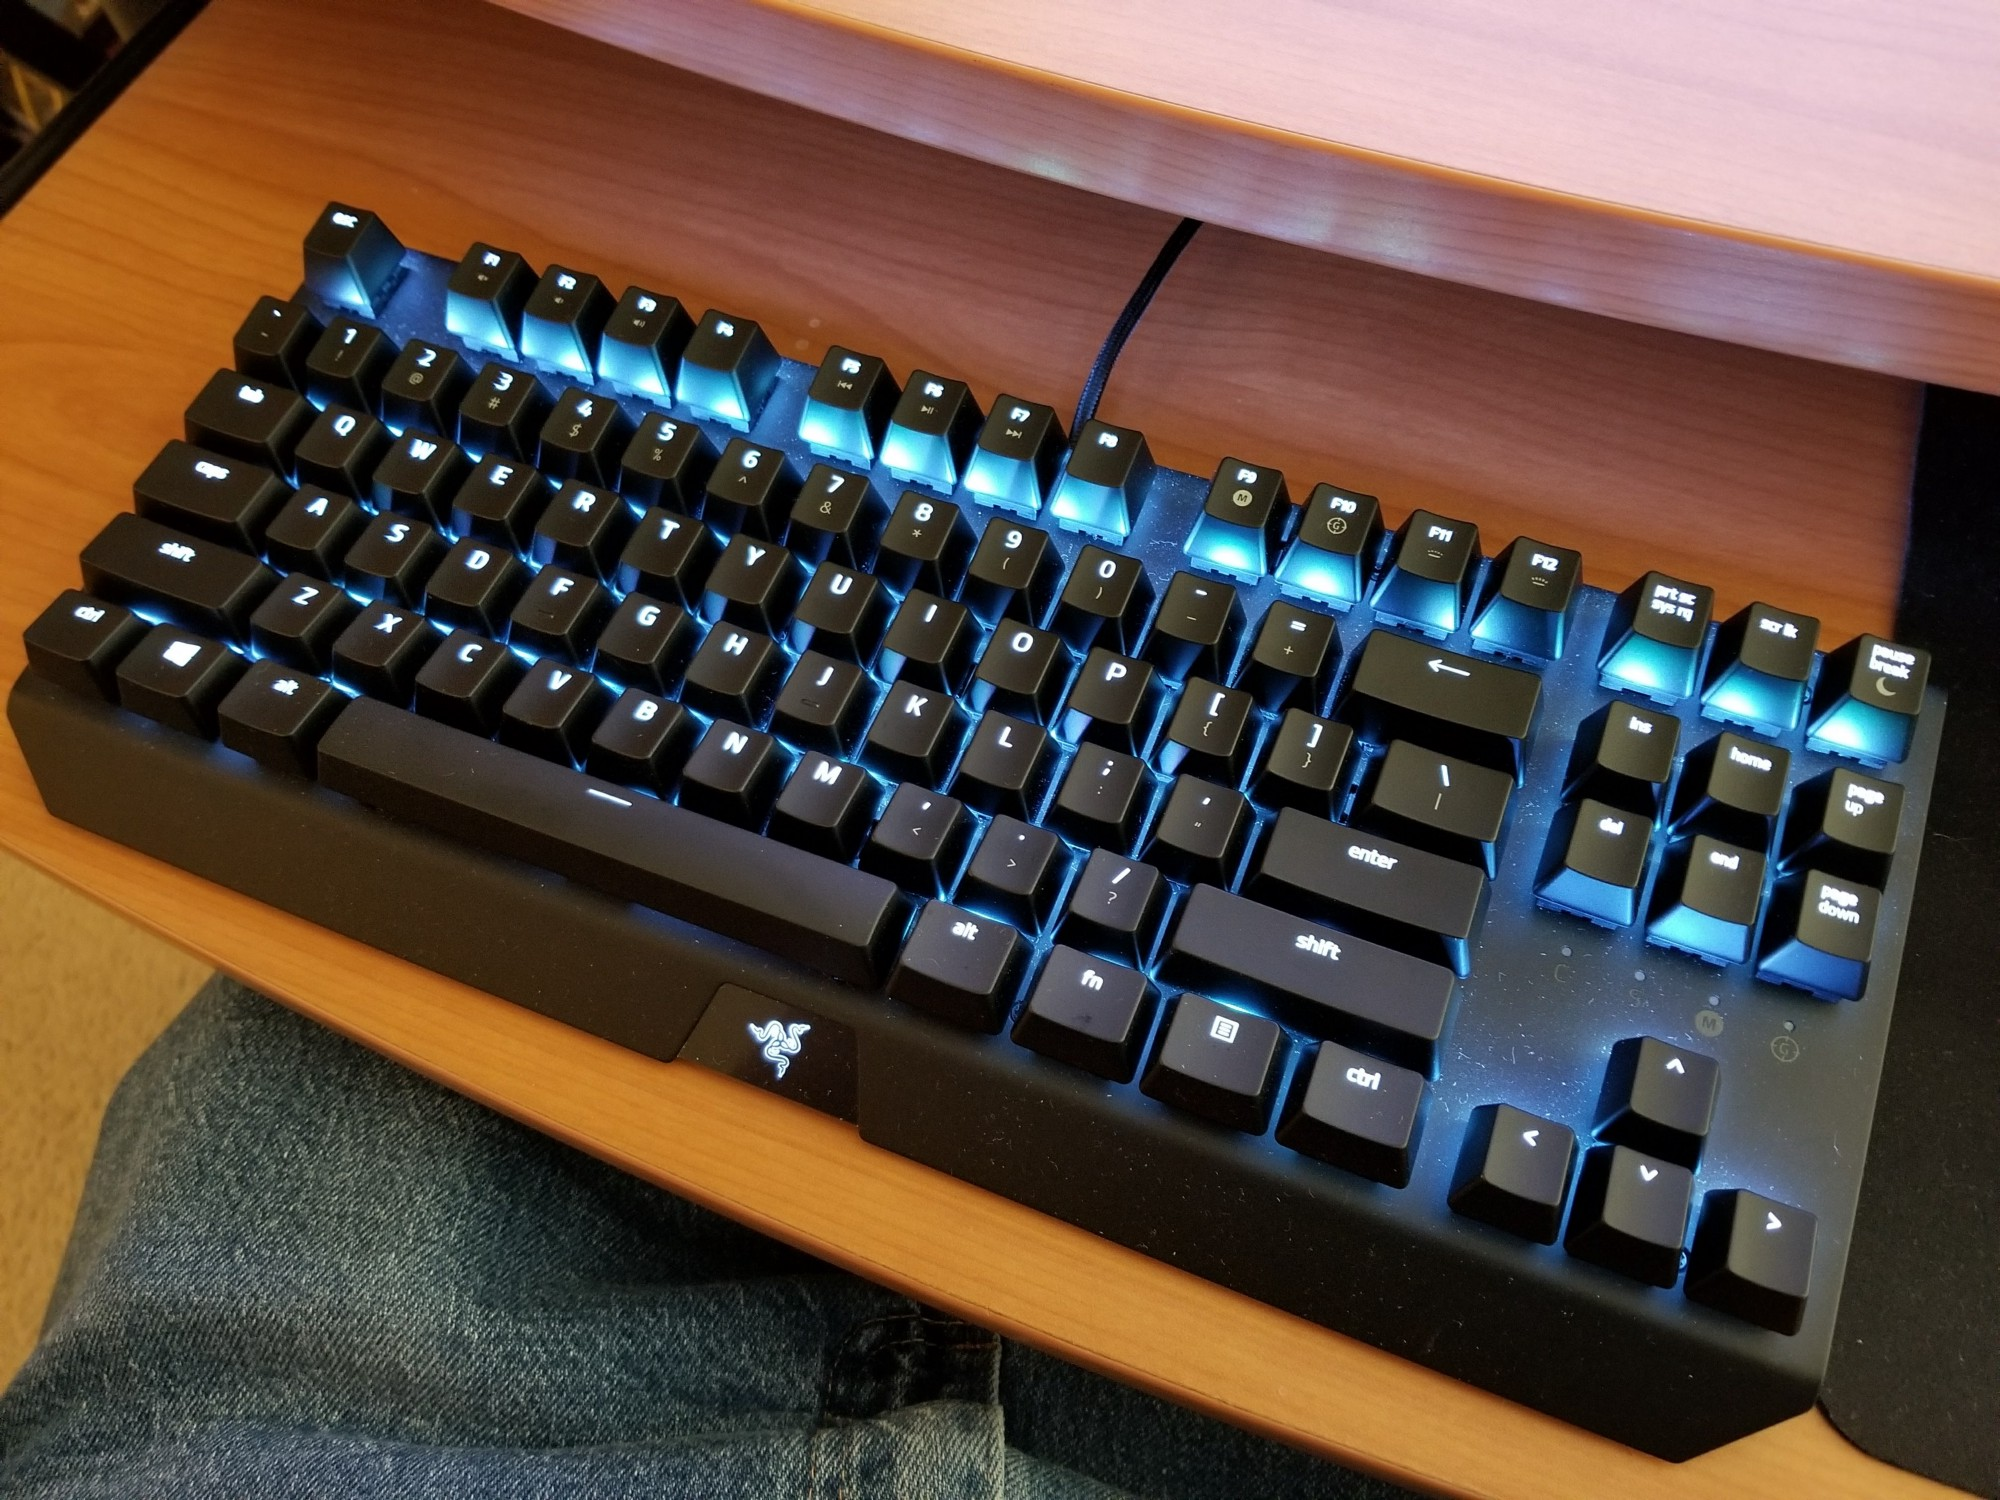 Razer Blackwidow X Tournament Edition Chroma Keyboard Review Corsair Mechanical K65 Rgb Red Switch Here Is The Sitting On My Tray Complete With Part Of Mouse Mat Pants And A Lot Dust